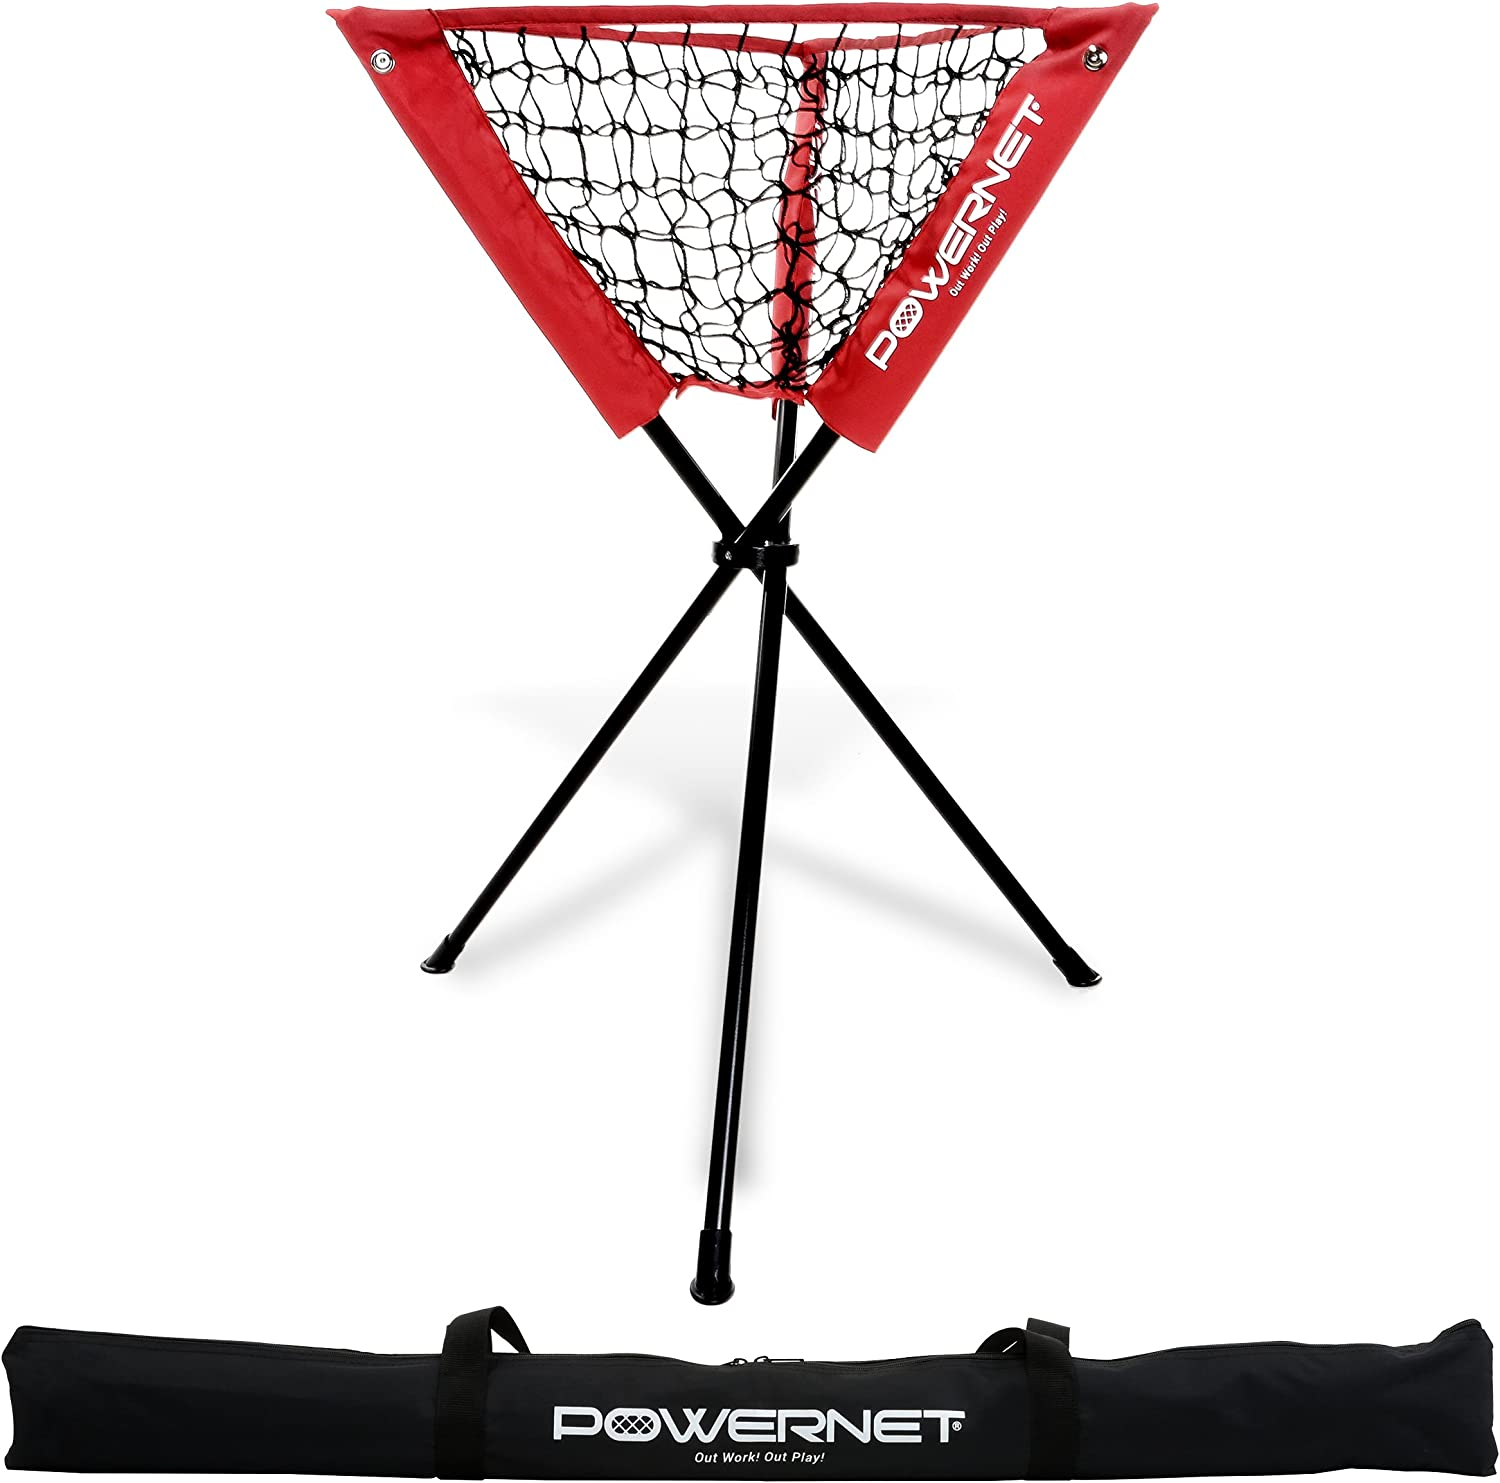 Powernet Ball Caddy   Baseball Softball Portable Batting Practice Ball Caddy   Use During Training and Drills   Save Your Back No More Bending   Holds up to 60 Baseballs   Instant Setup